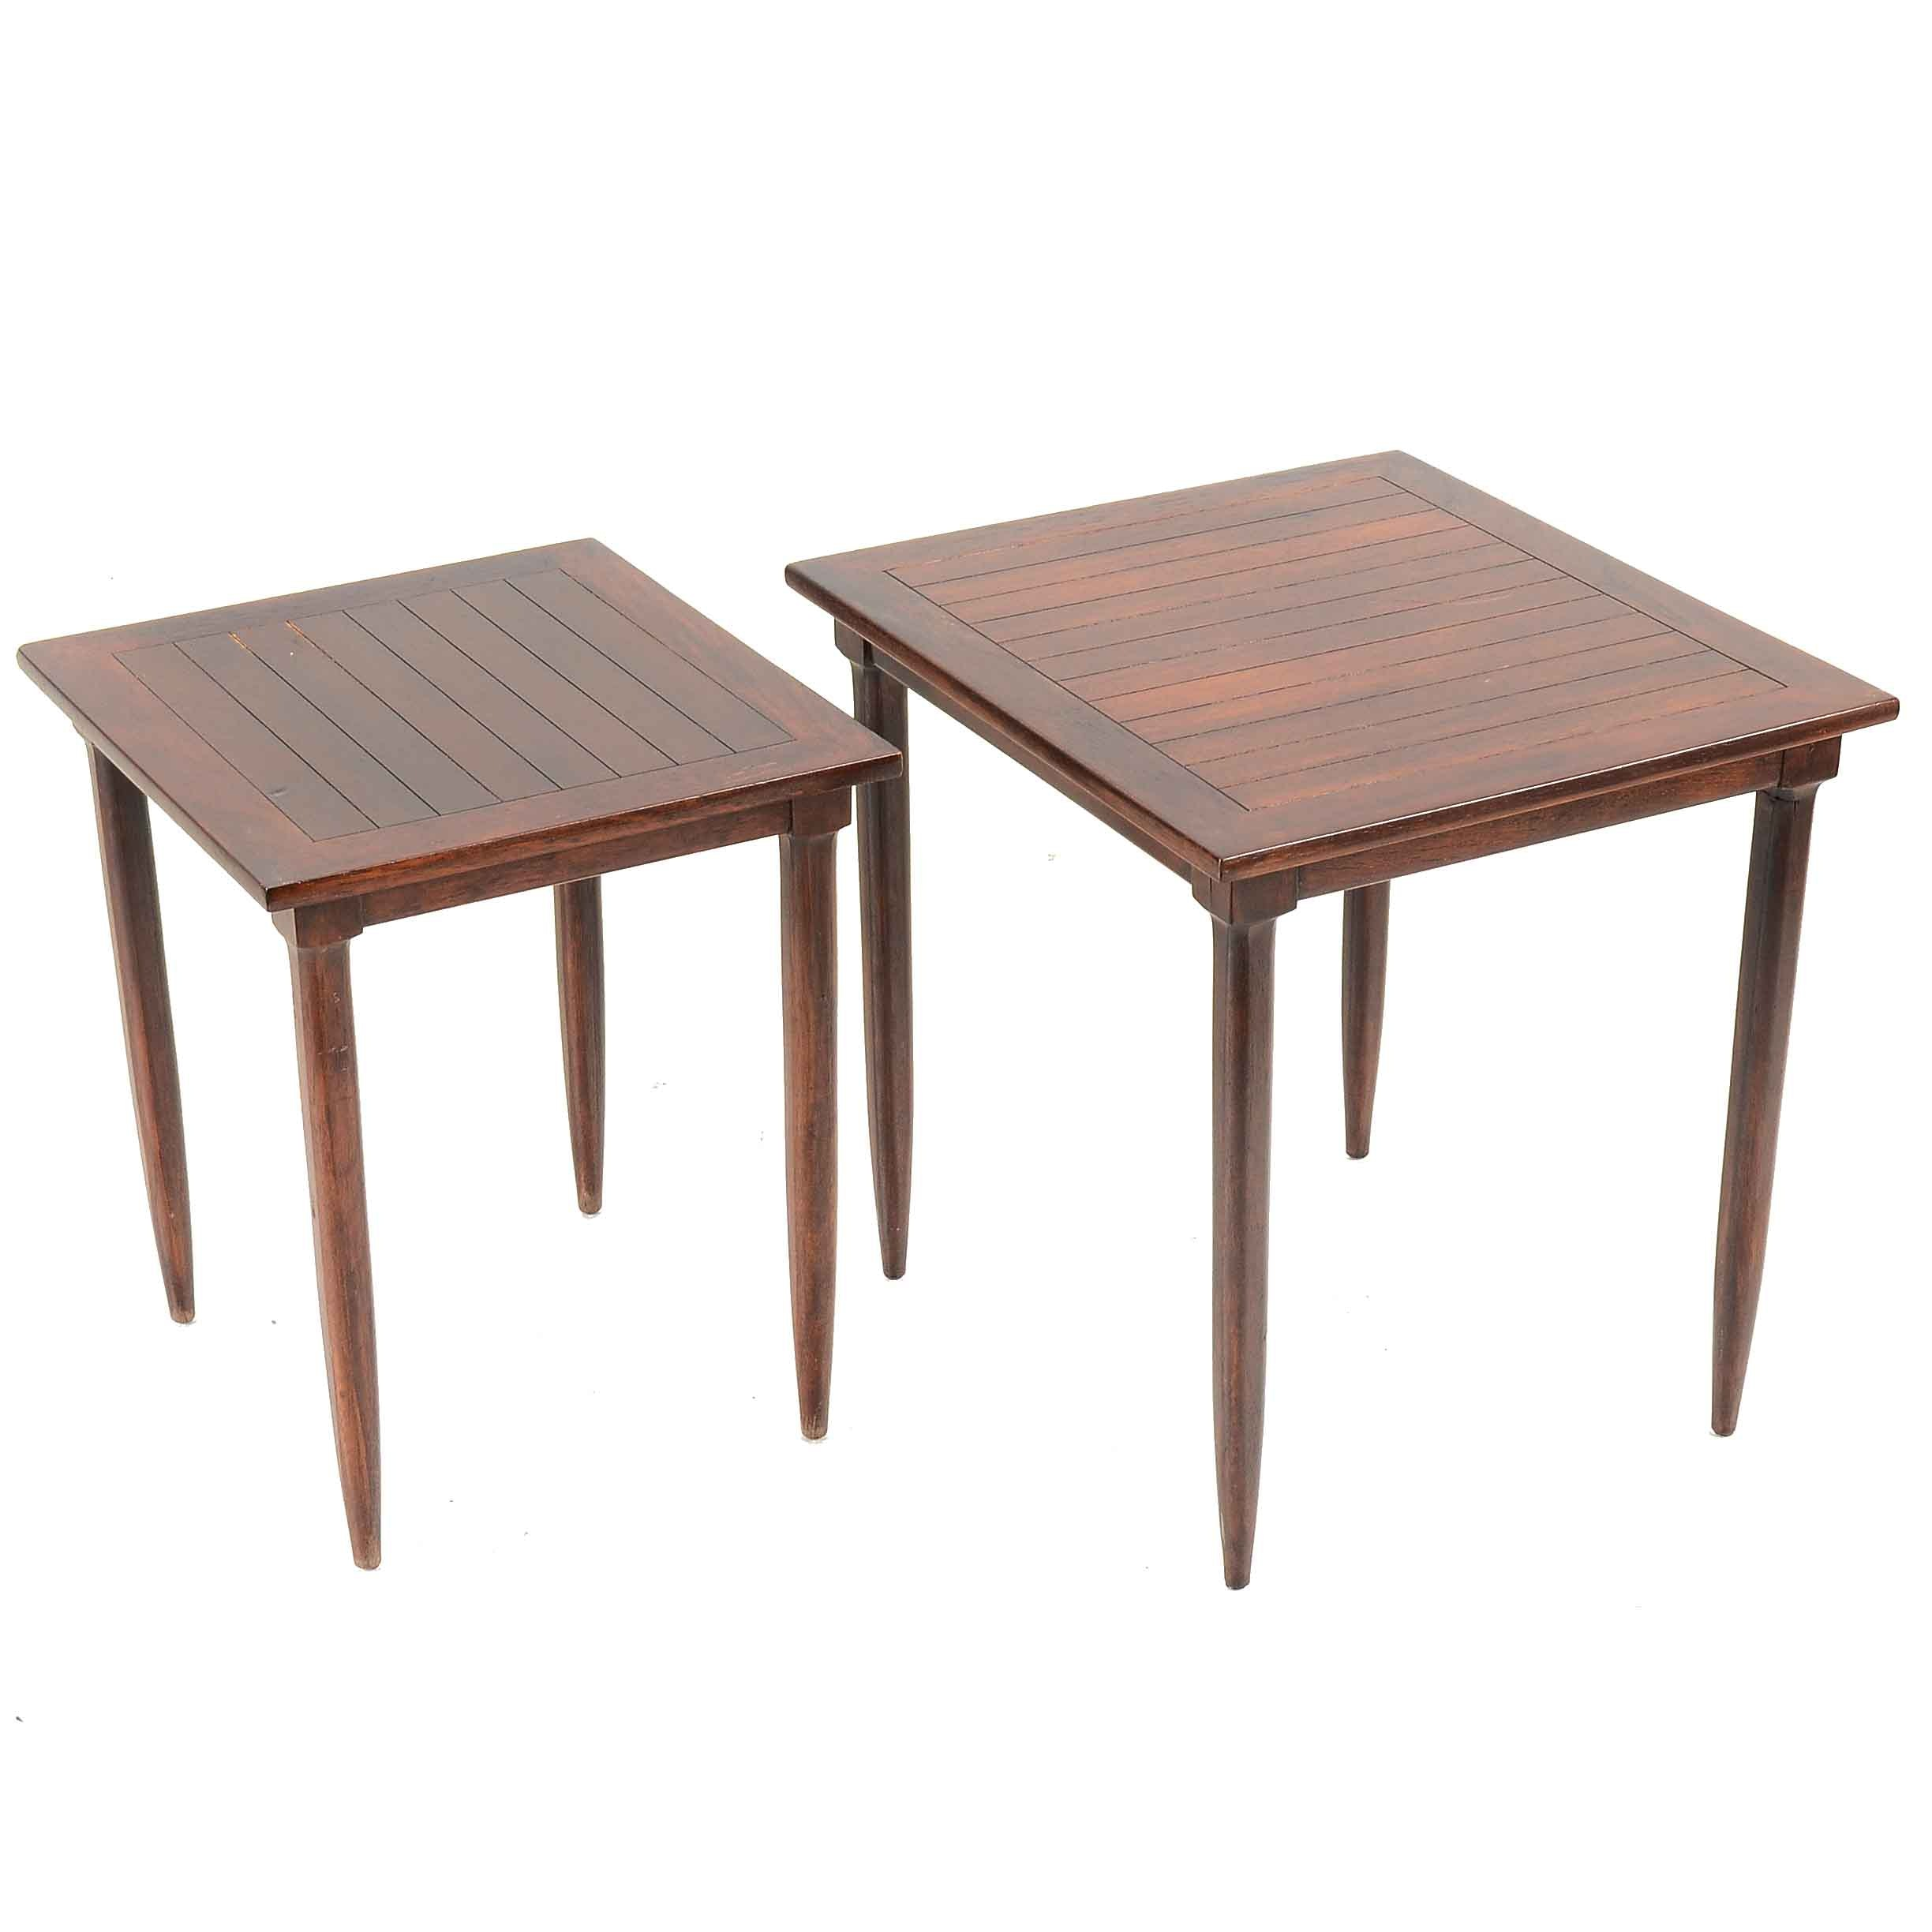 Two Mid Century Nesting Tables By Tomlinson ...